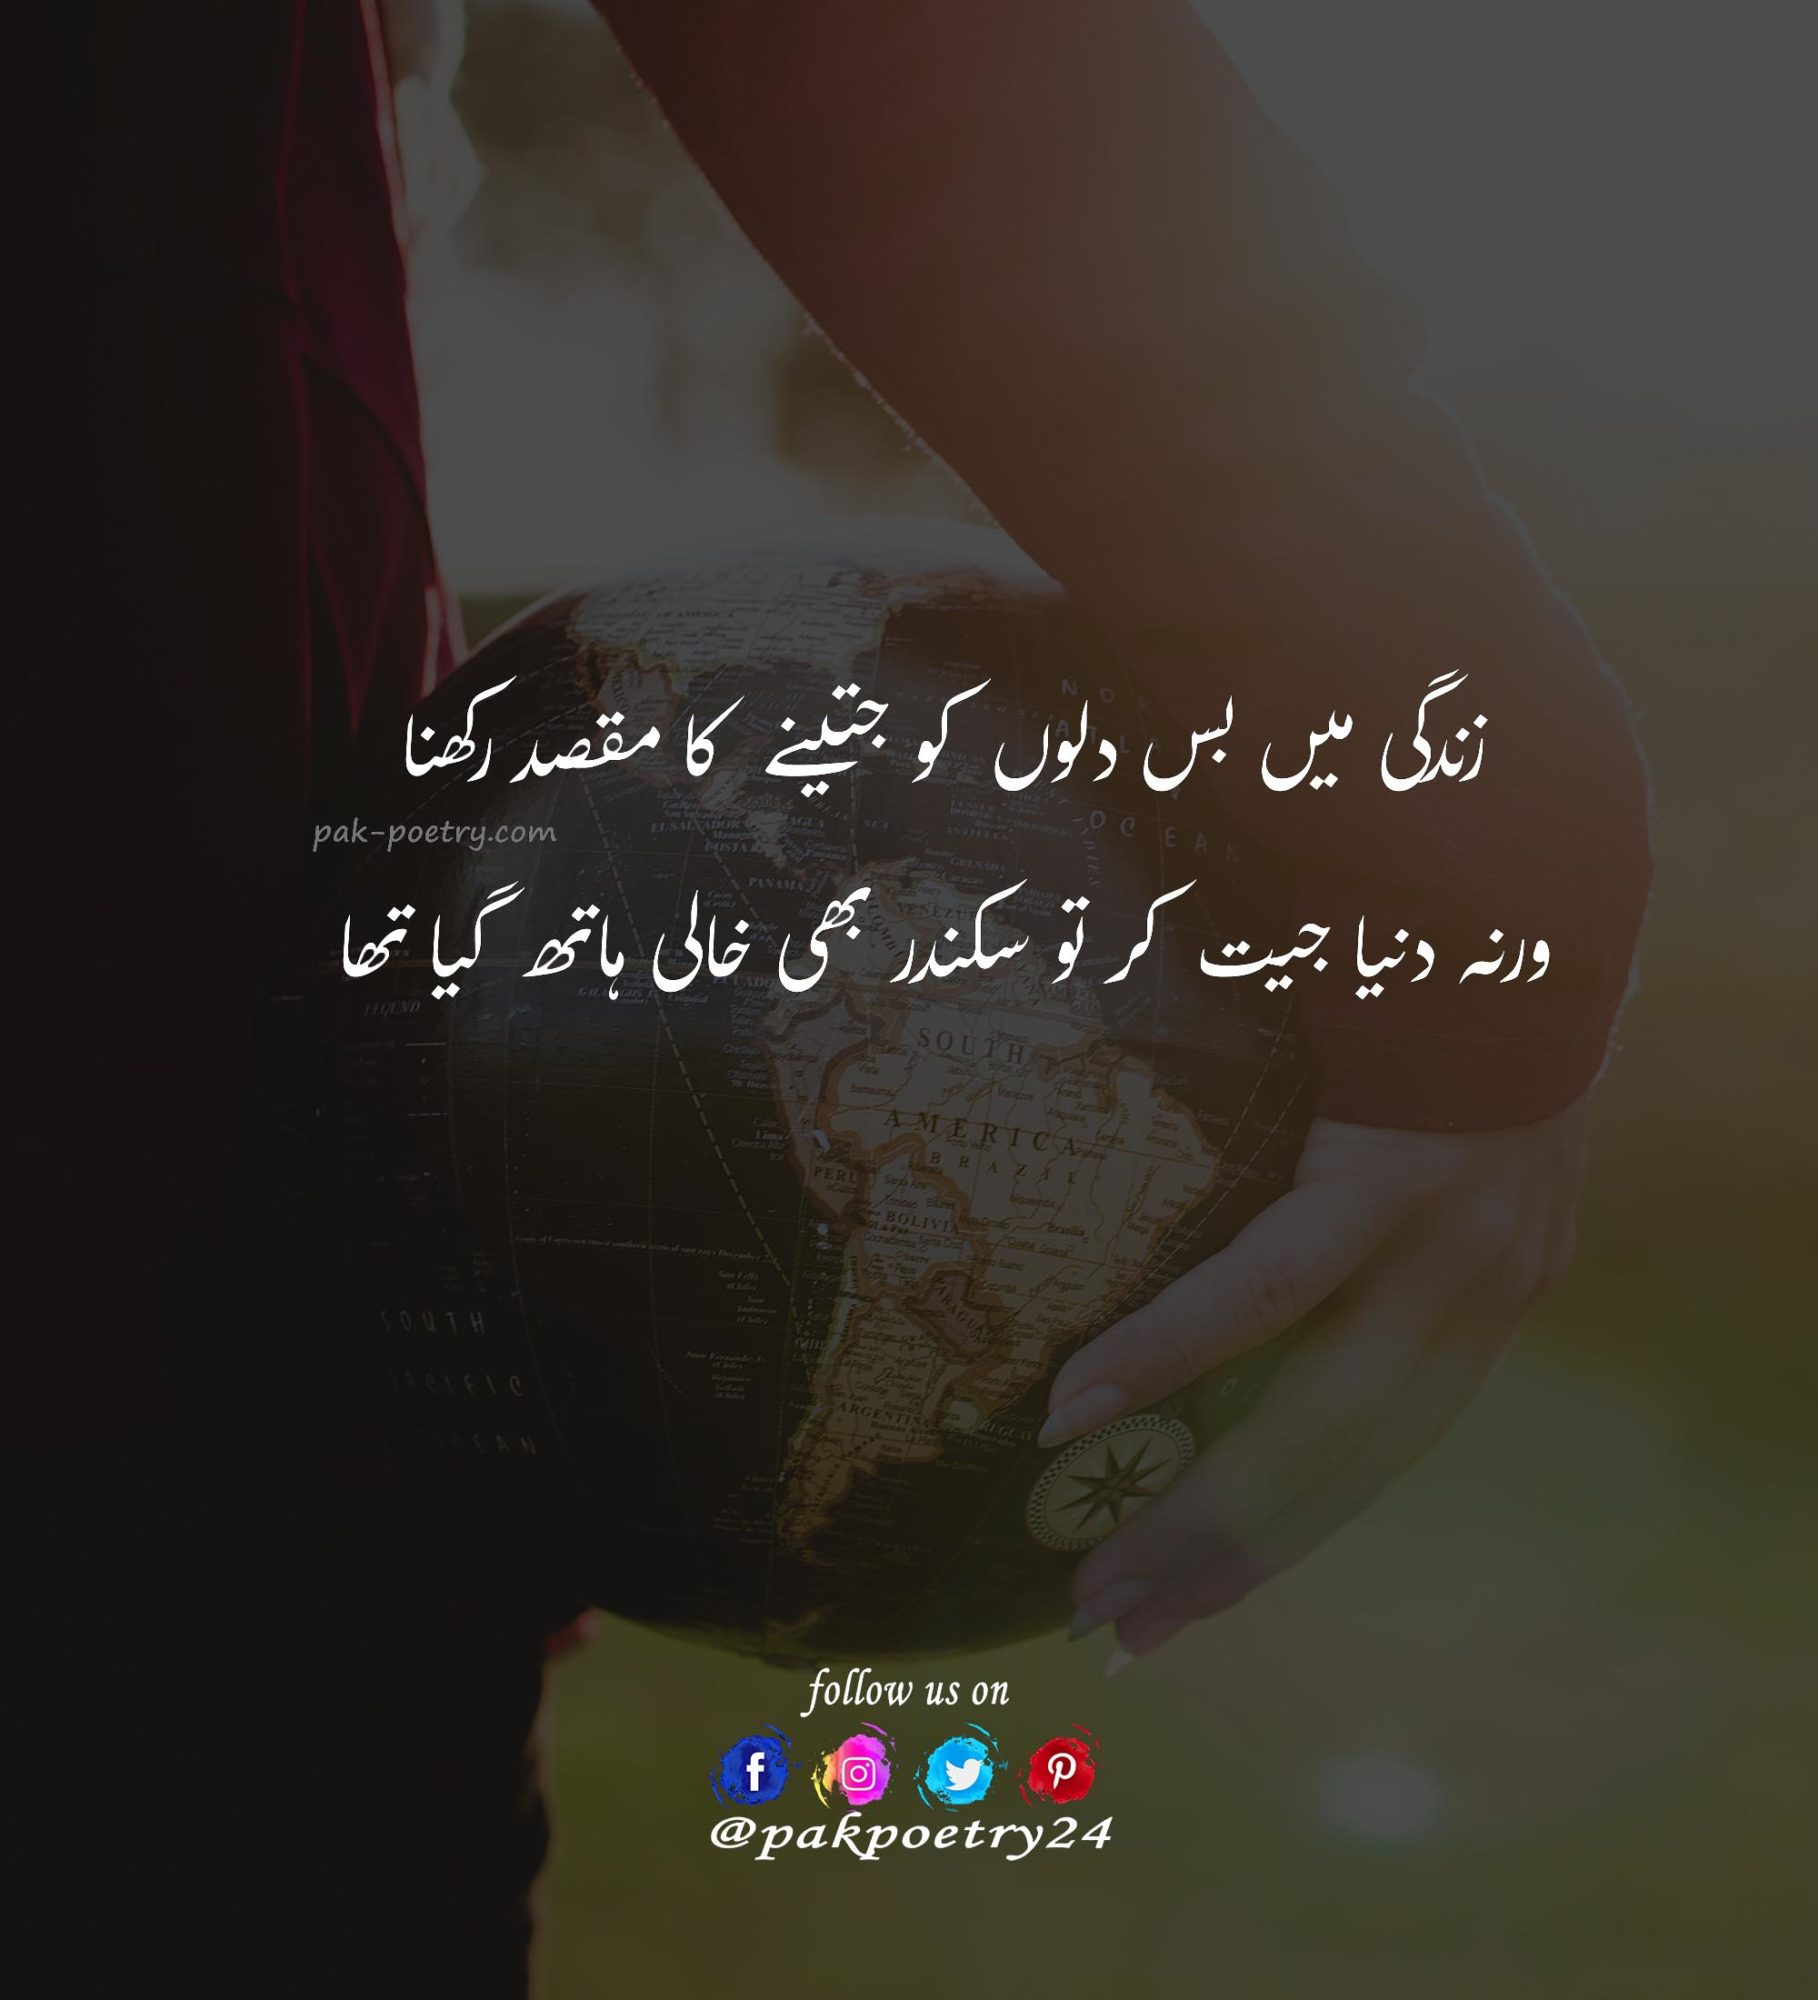 urdu poetry, poetry in urdu, poetry urdu, poetry, urdu shayari, potry in urdu, baat poetry, poetry.in.urdu, urdu poetry pic, poetry into urdu, urdu. poetry, porty urdu, urdu pietry,